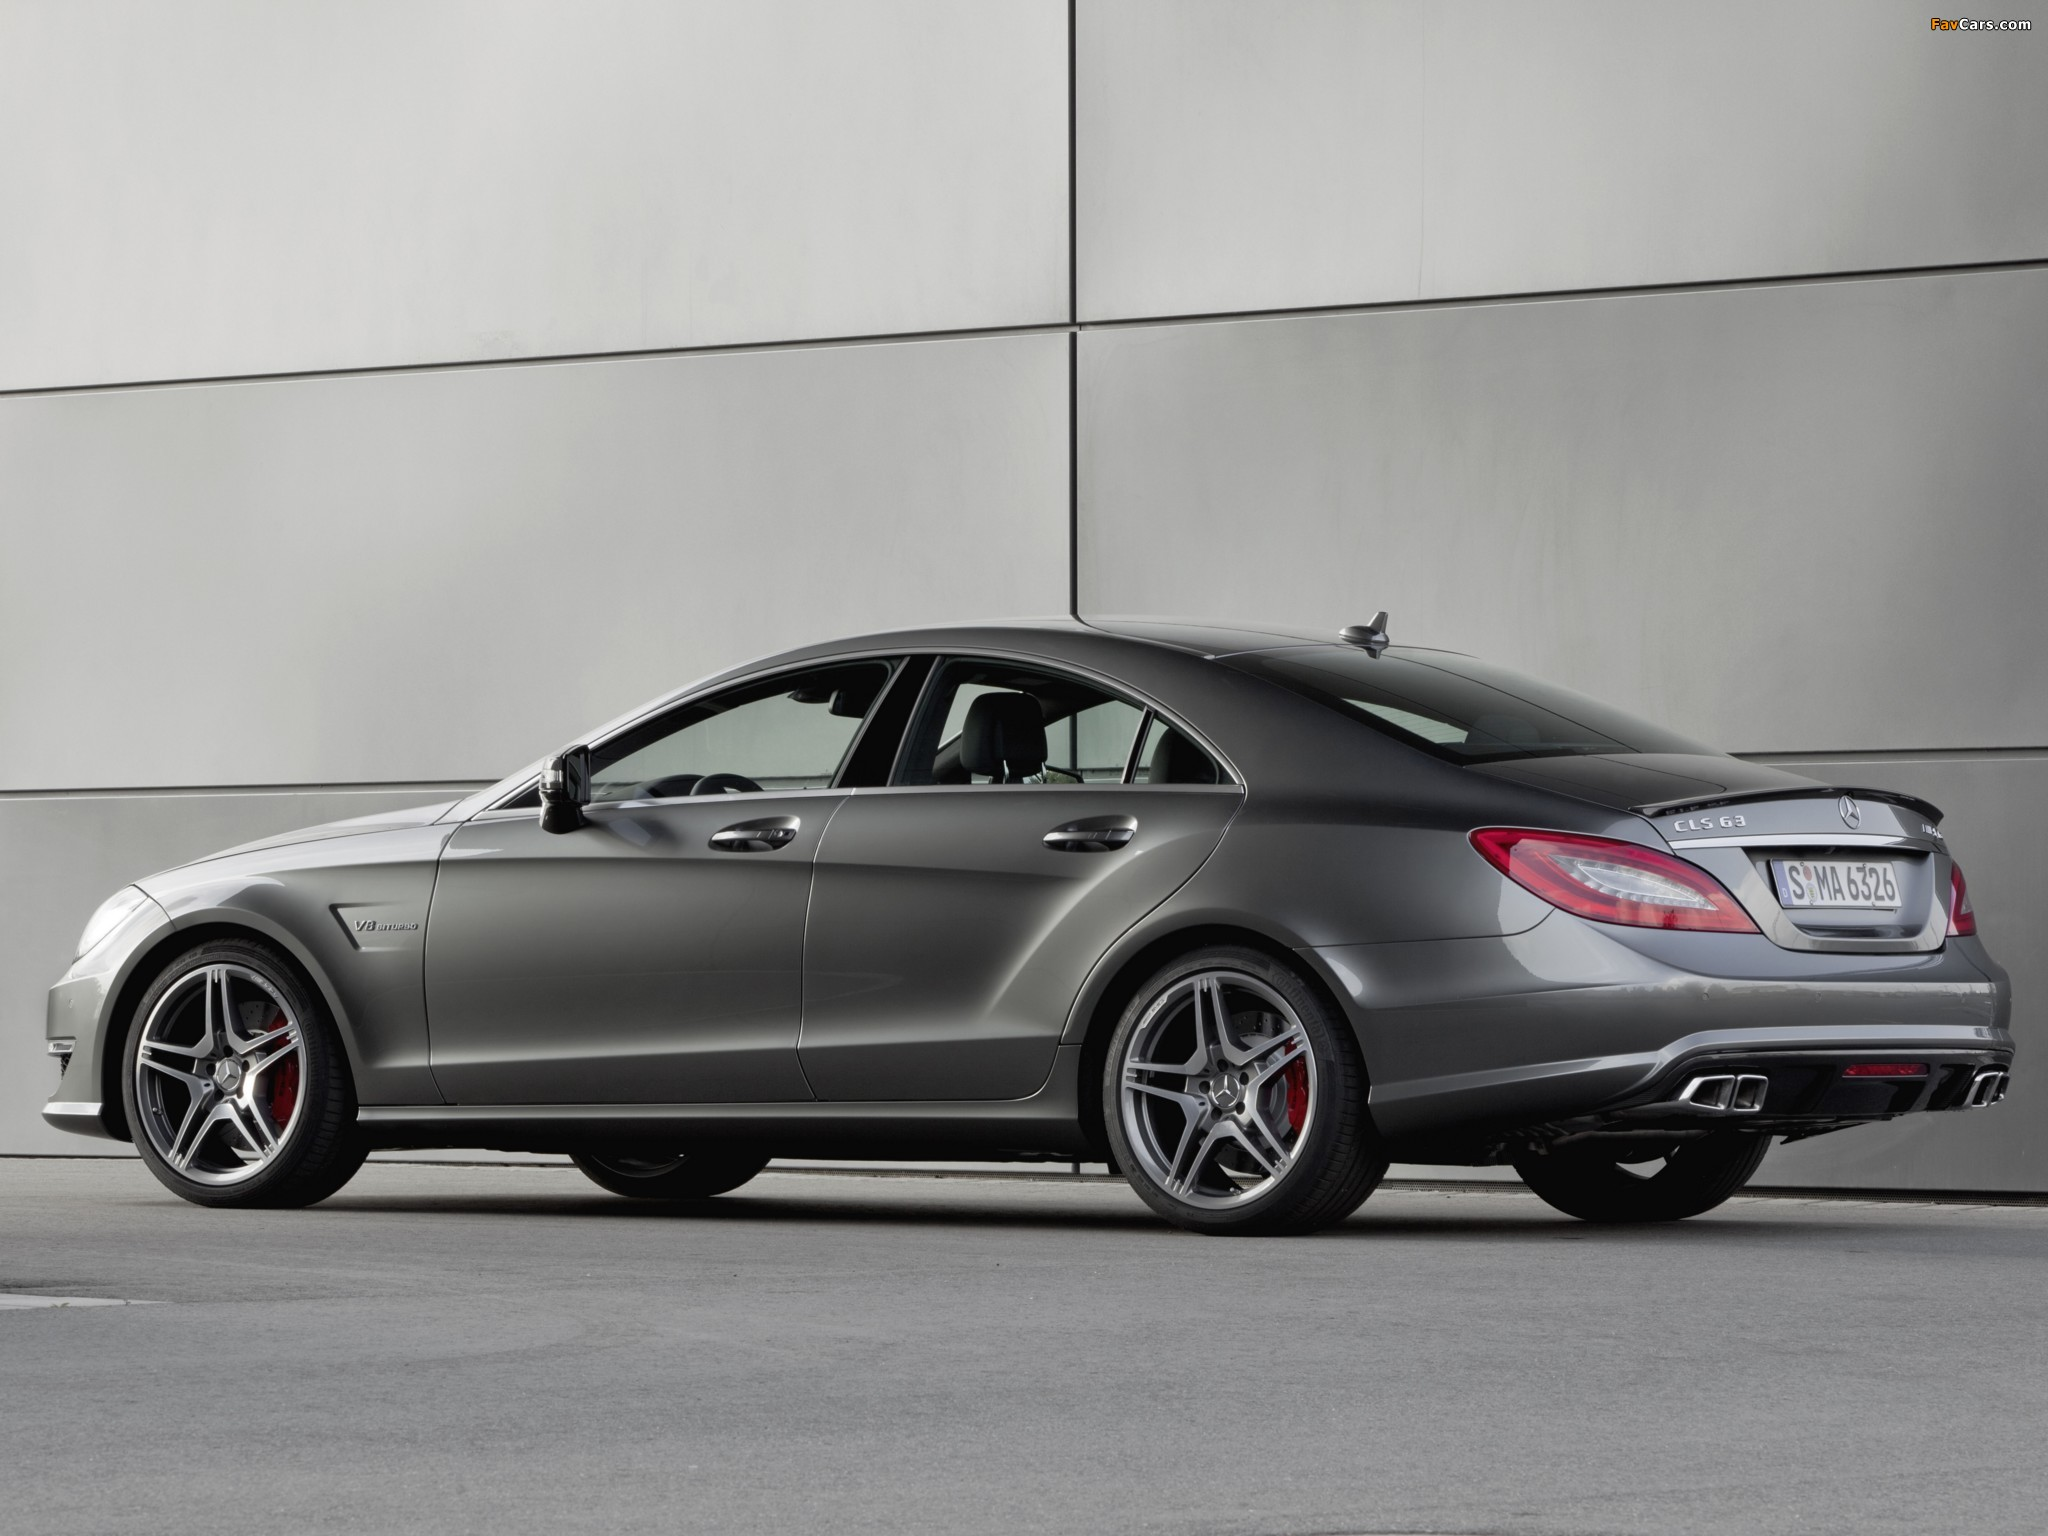 Mercedes benz cls 63 amg c218 2010 images 2048x1536 for 2010 mercedes benz cls